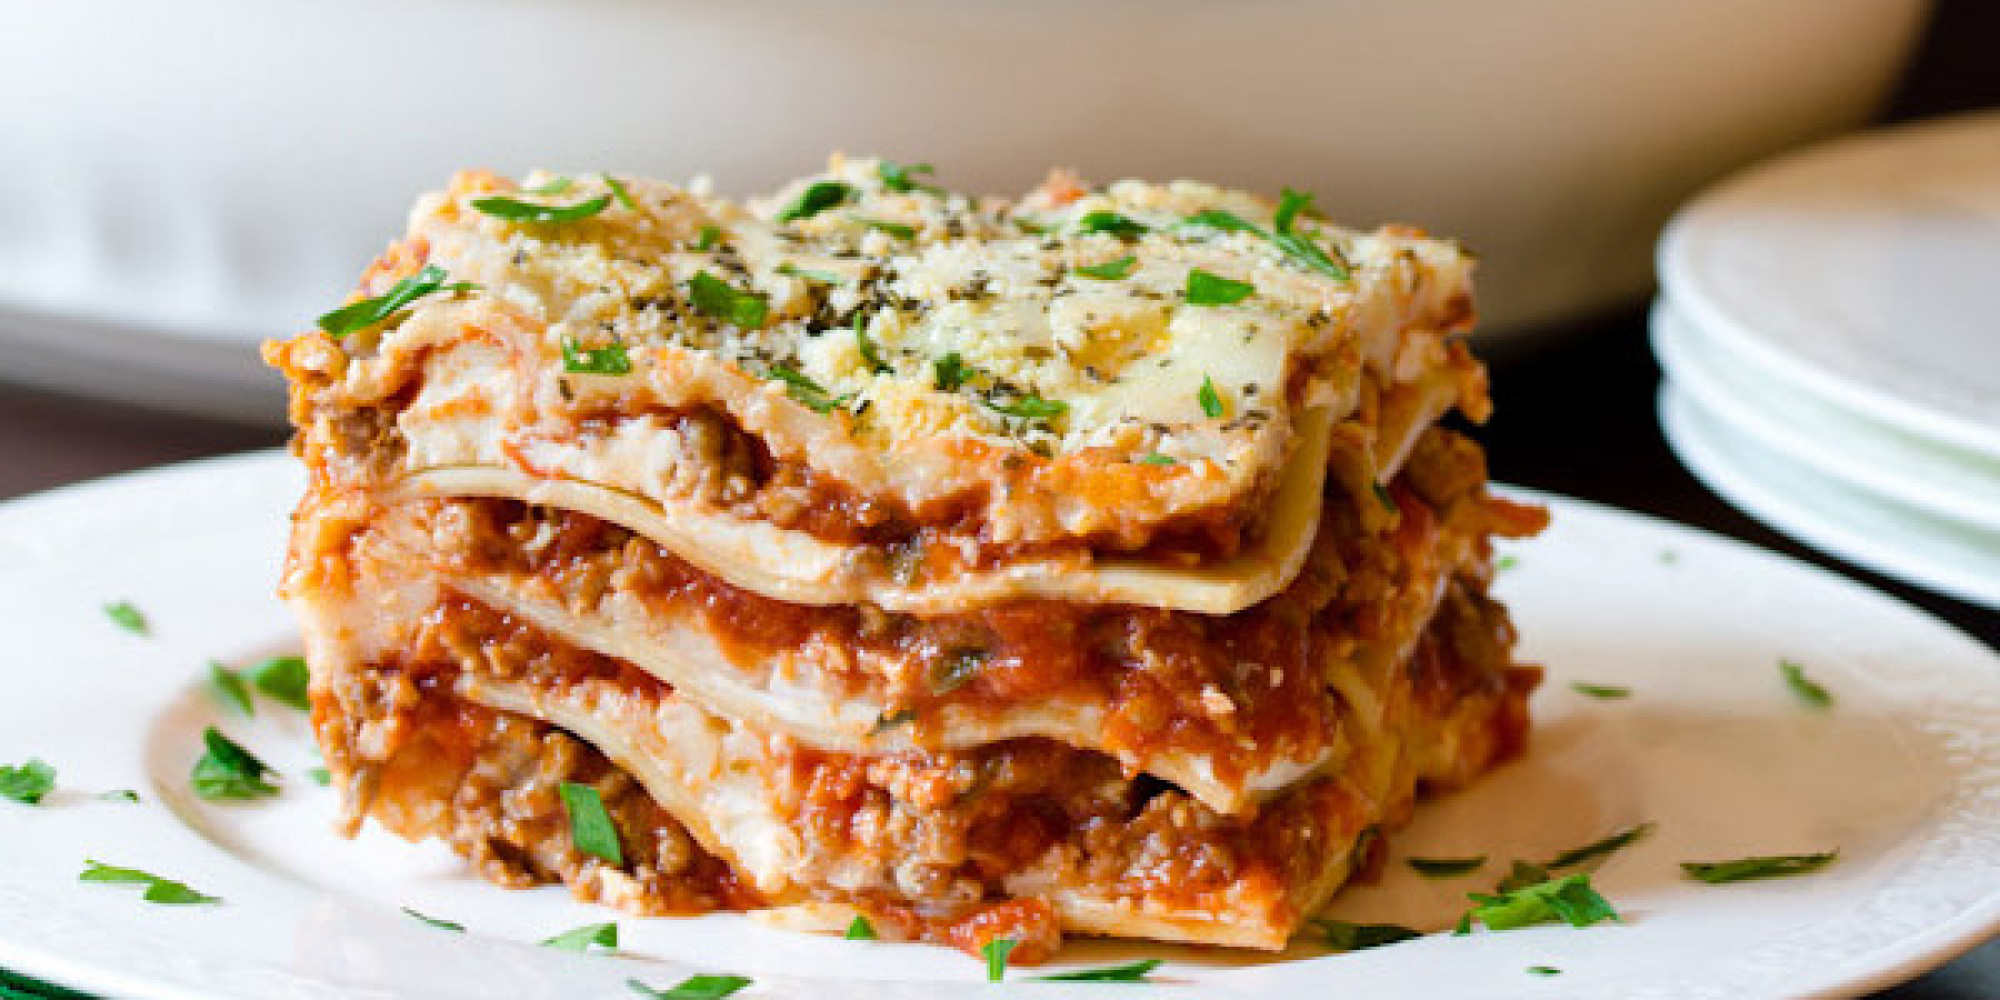 Fasta Lasagna Print this Recipe